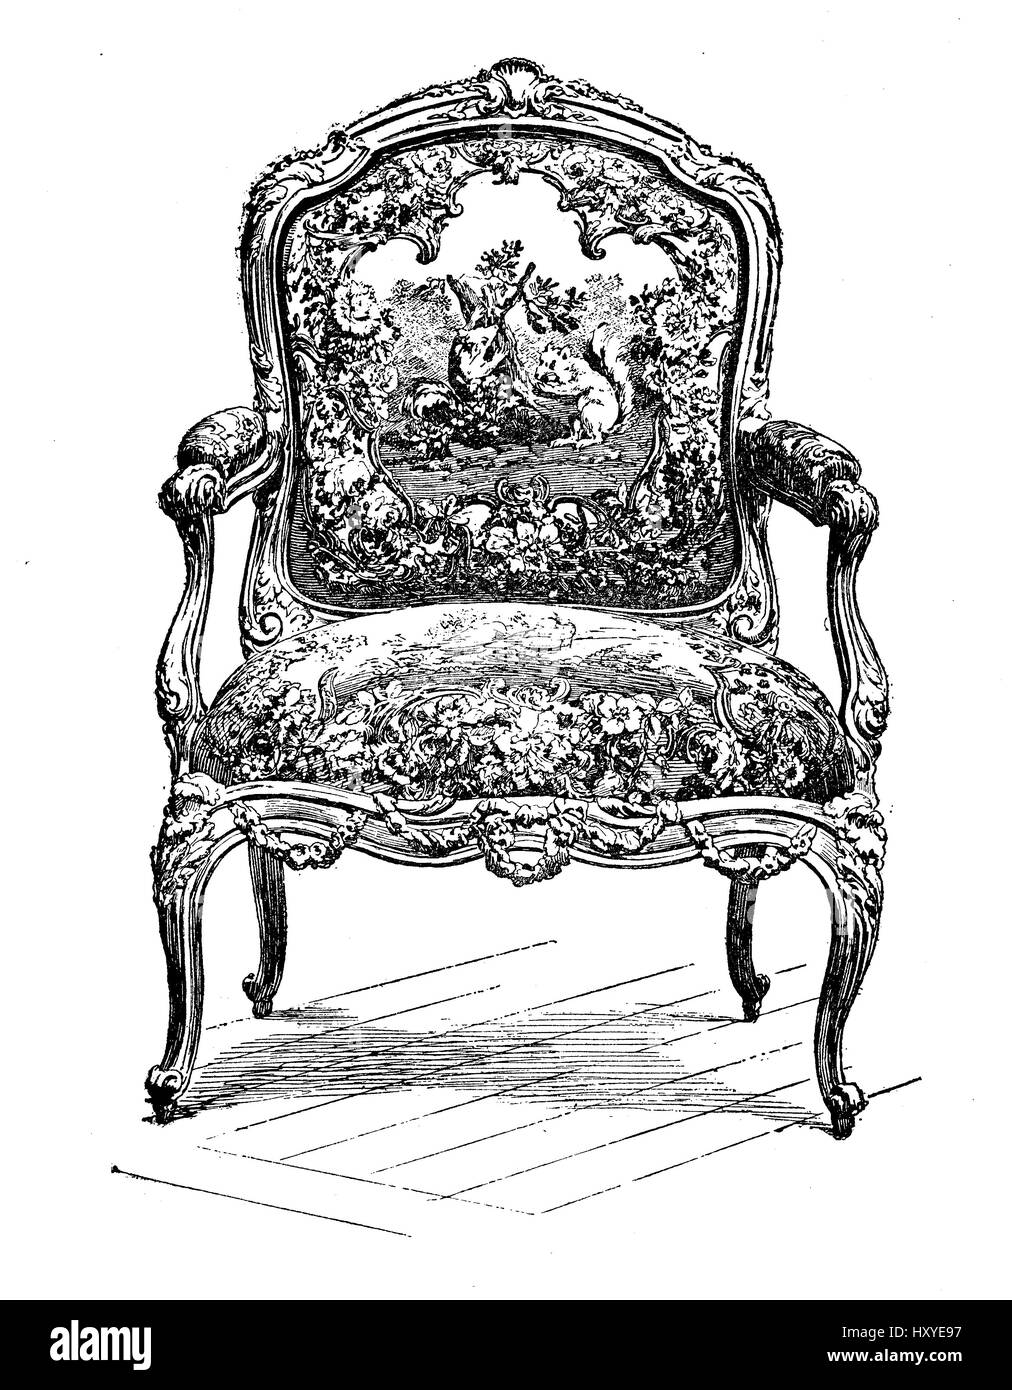 Rococo furniture sketch - Stock Photo Vintage Engraving Of Rococo Style Upholstered Chair Xvii Century